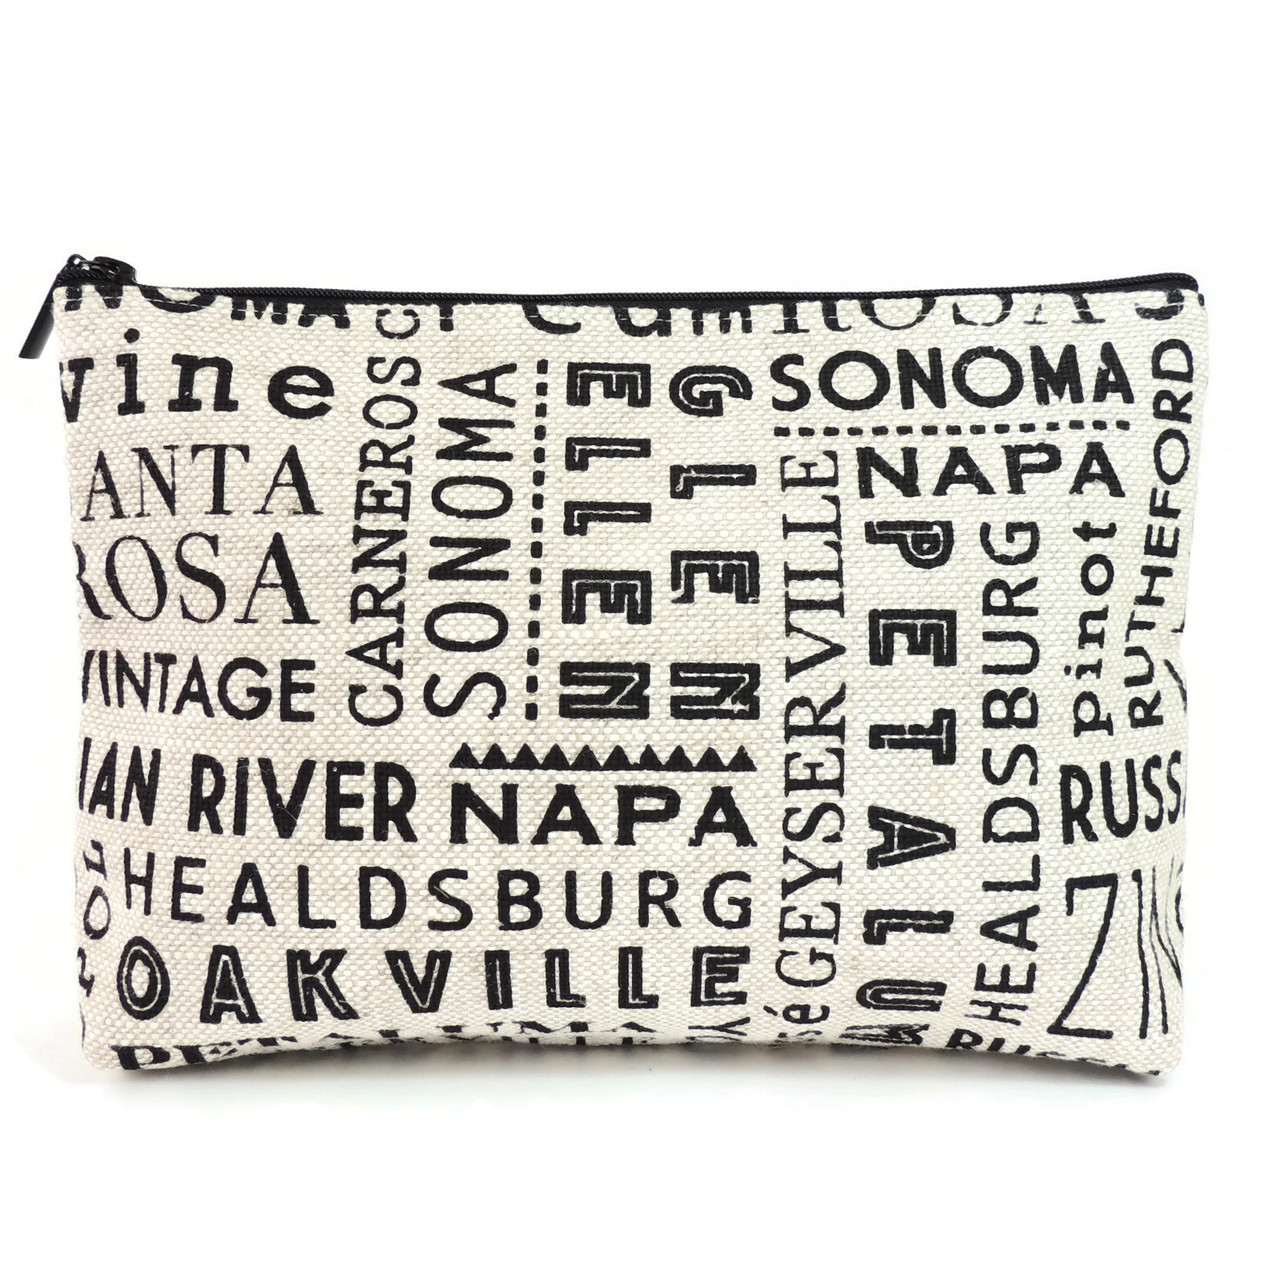 Carryall Clutch in Wine Country Linen